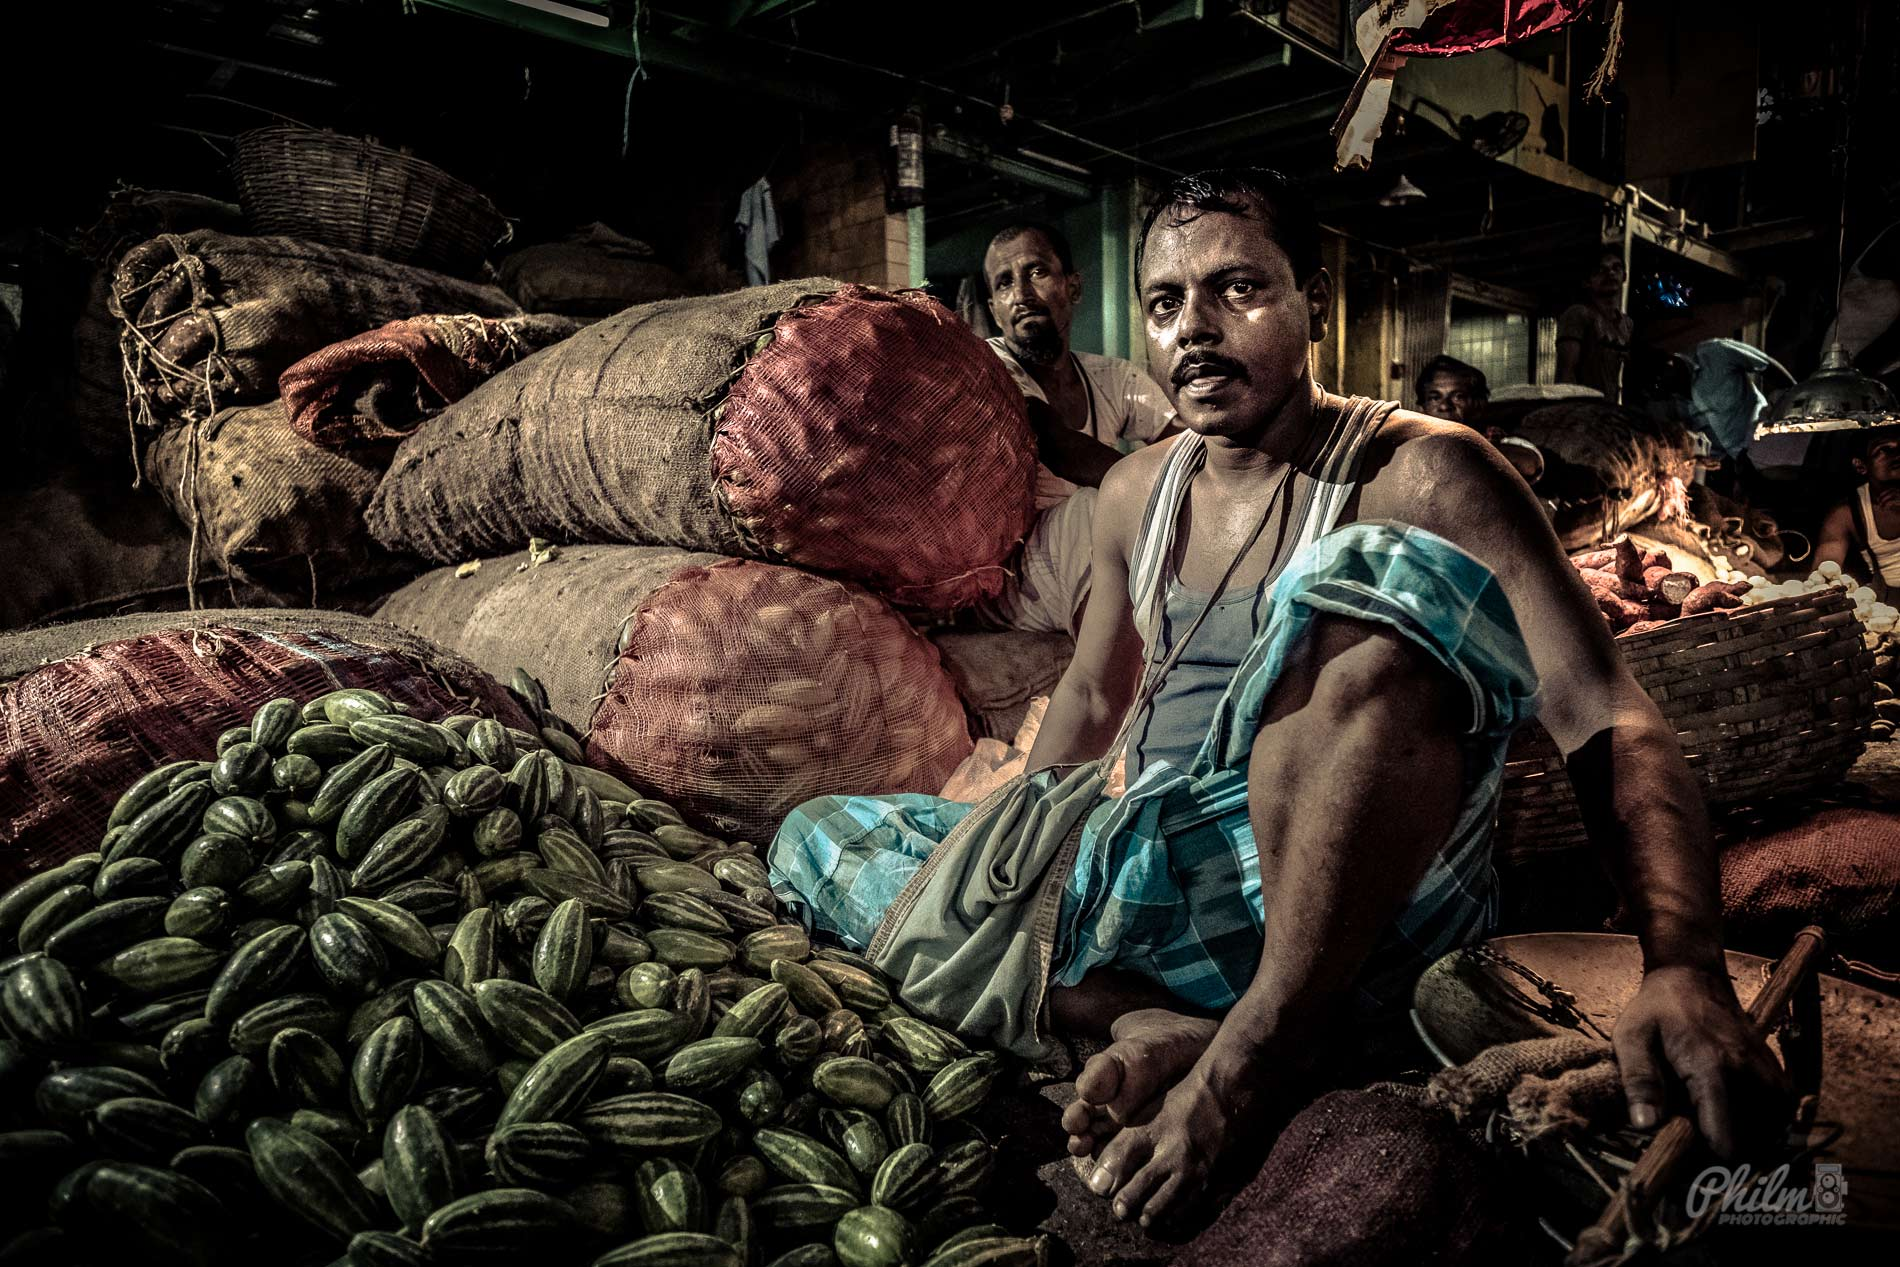 Markets of India – Portraits with a 14mm?